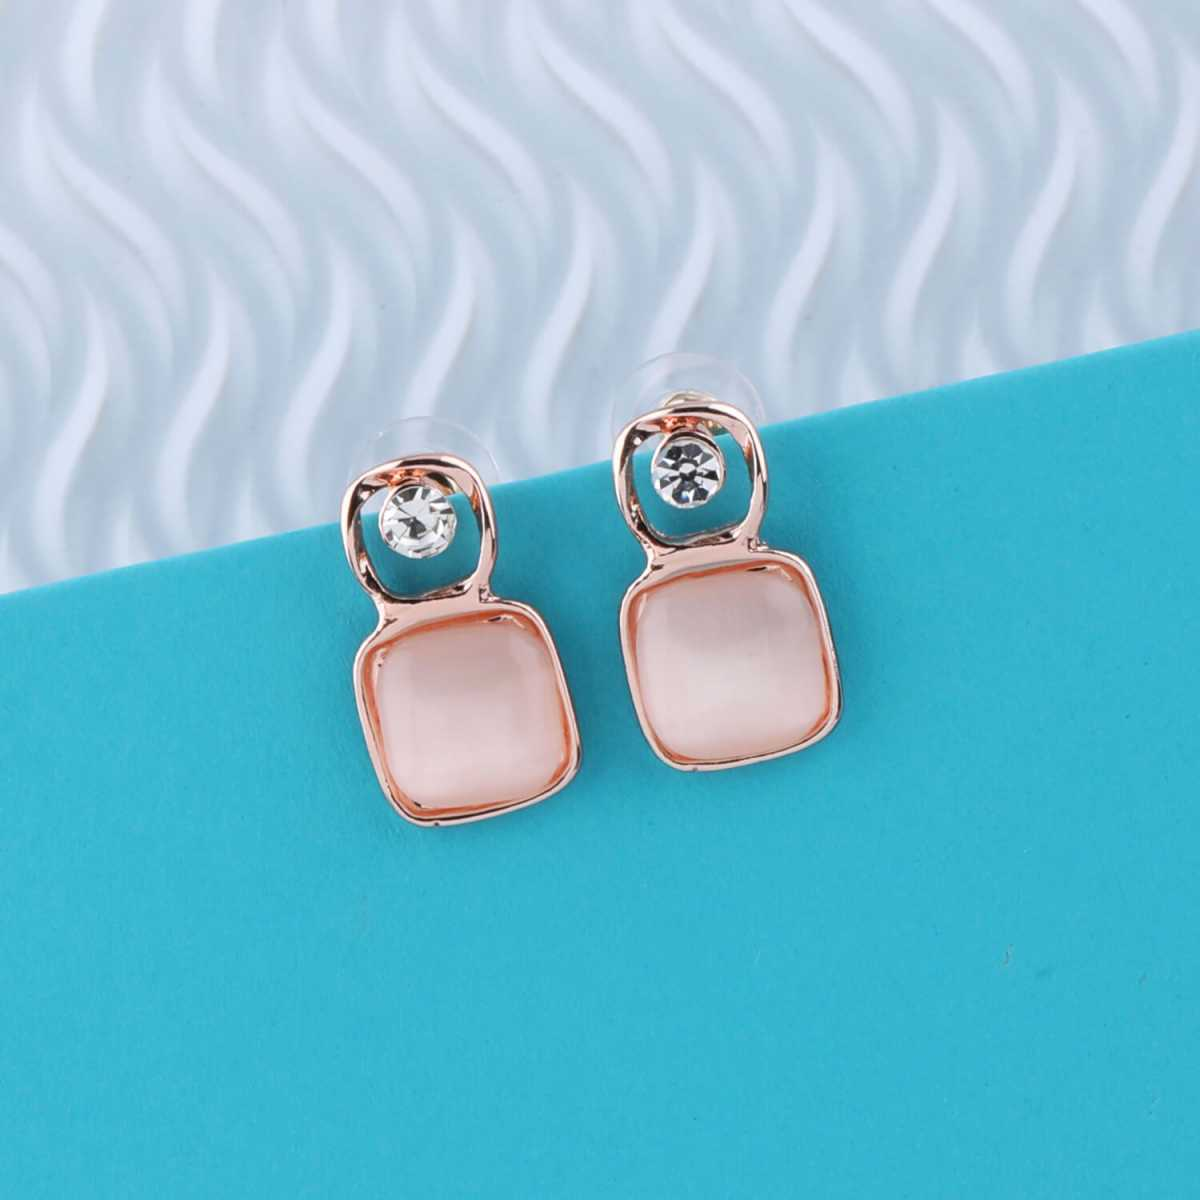 SILVER SHINE Attractive Rose Gold Plated Earring for Women and Girls.